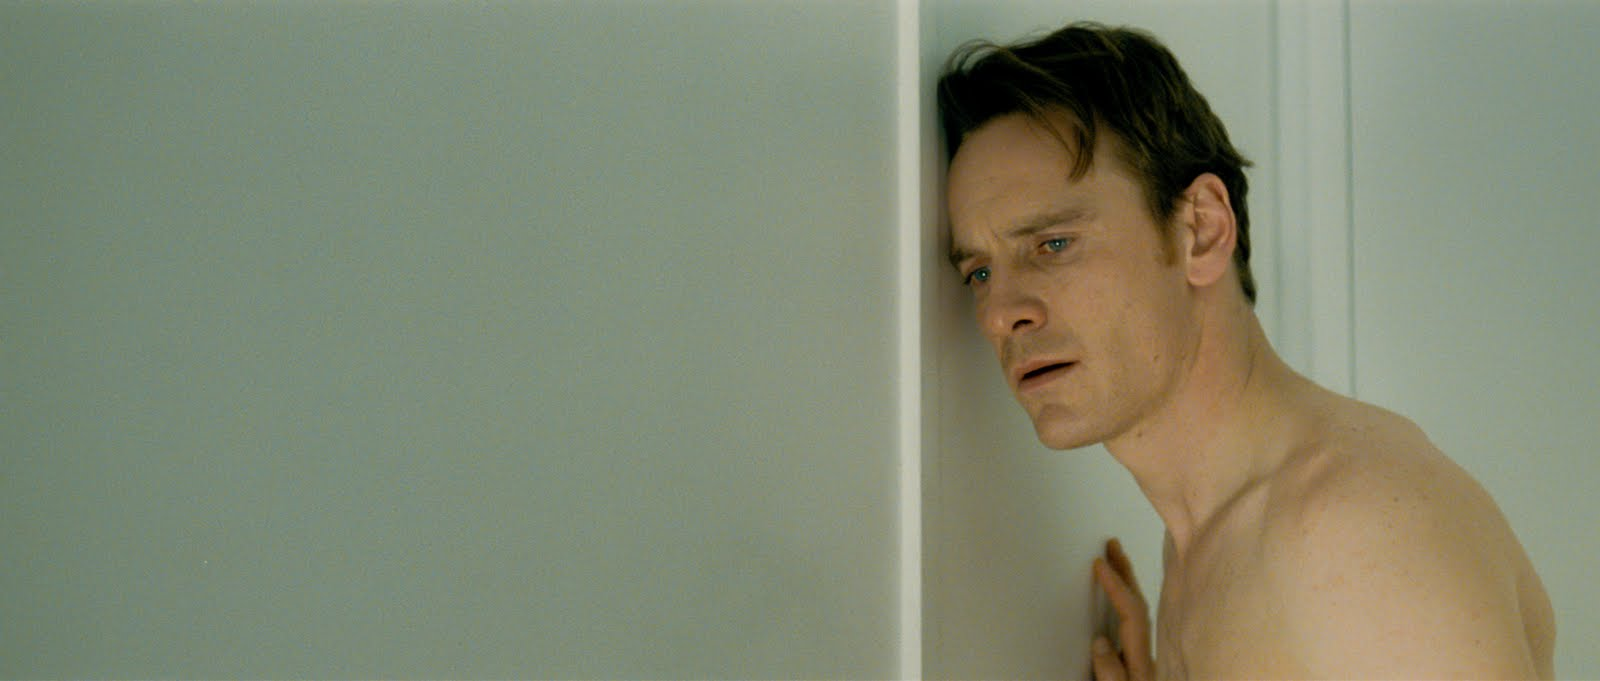 Michael Fassbender in Shame (2011). Photo credit: Criterion